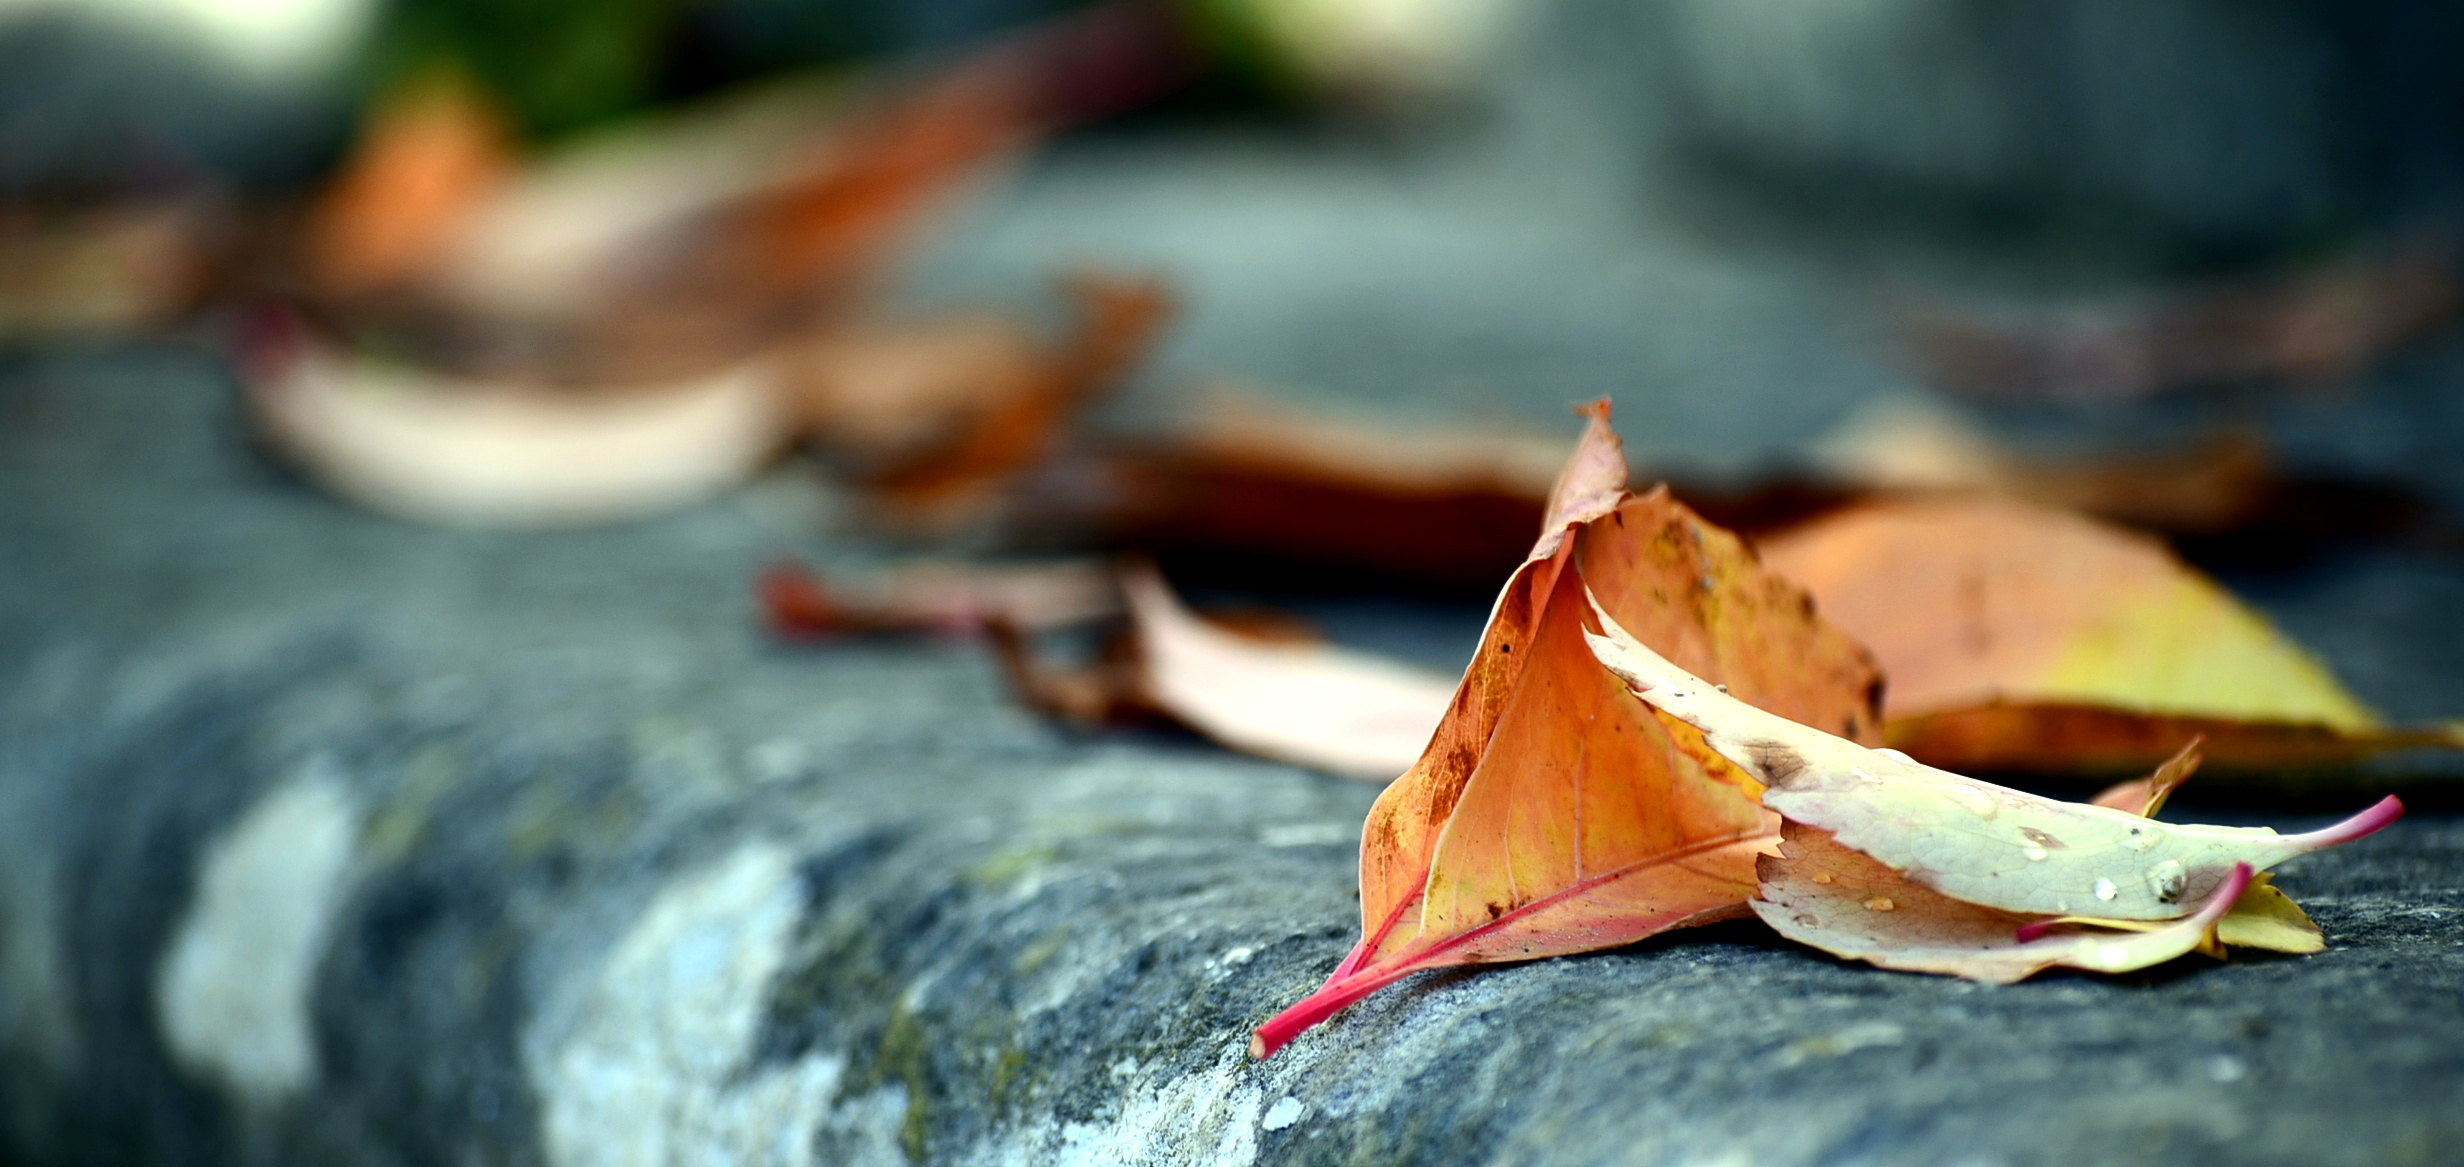 autumn by mgkm photography courtesy of Flickr.jpg